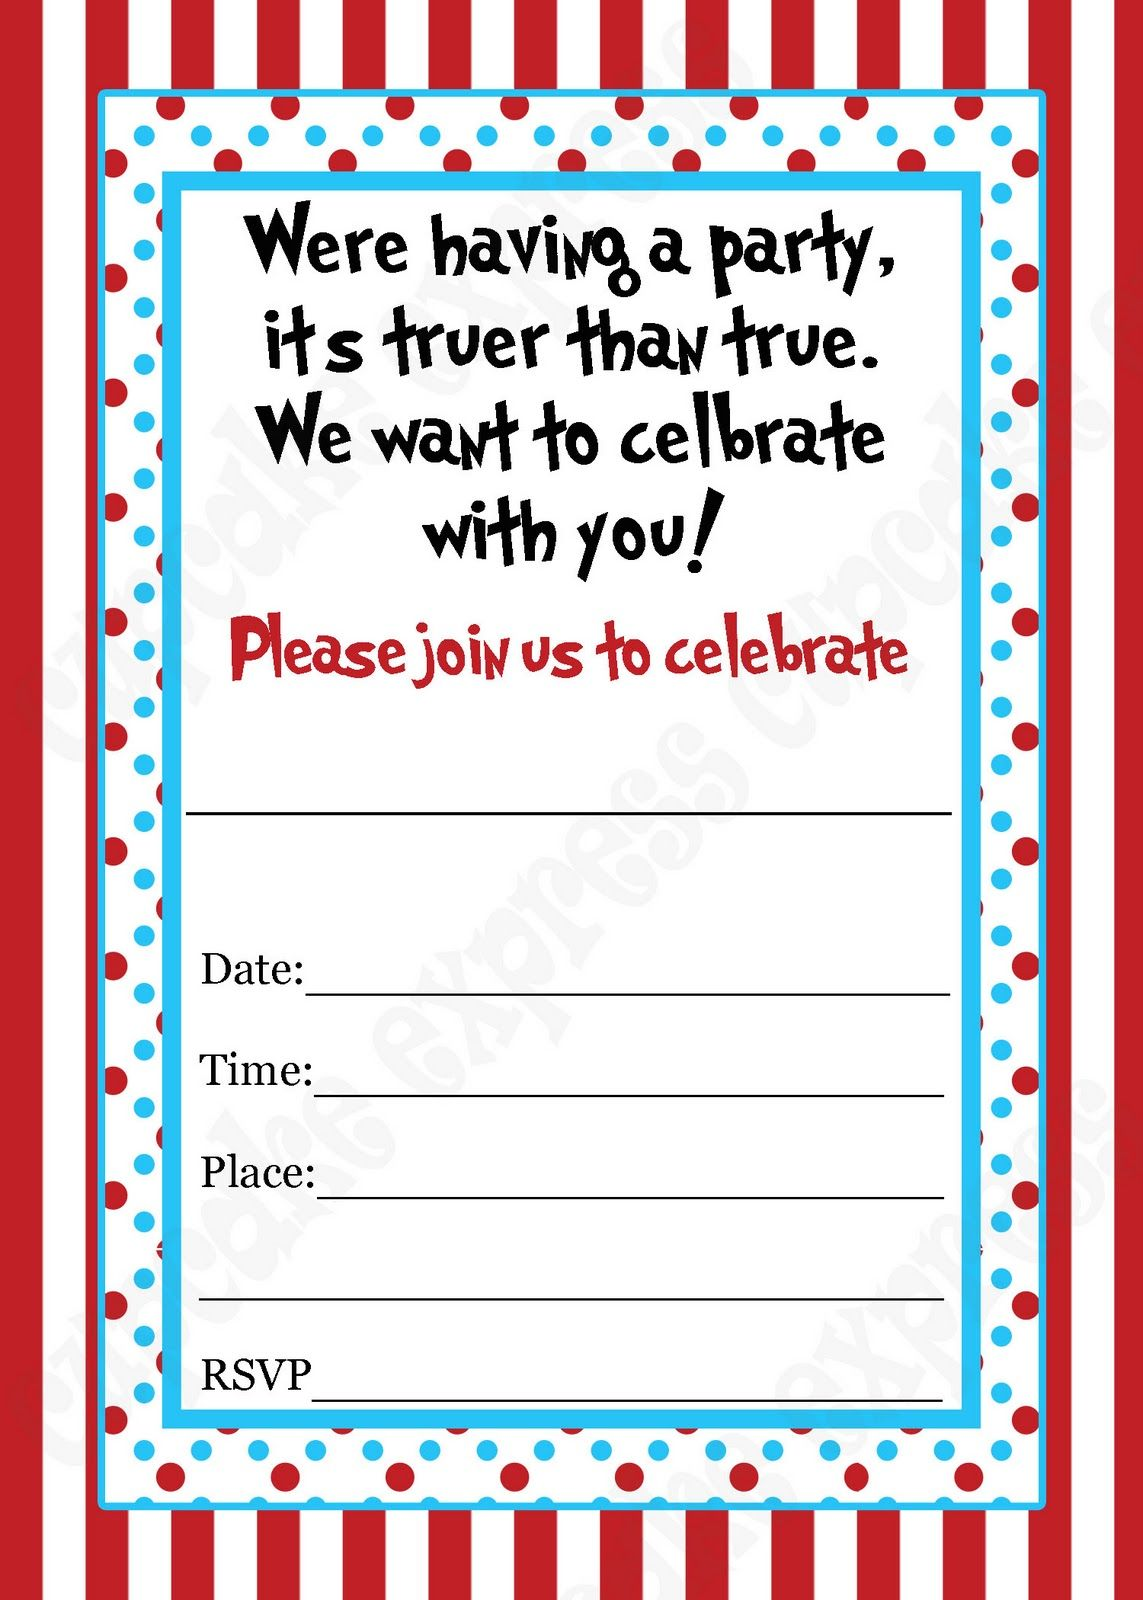 Blank Dr Seuss Invitations Dr seuss birthday invitations | Dr Seuss ...